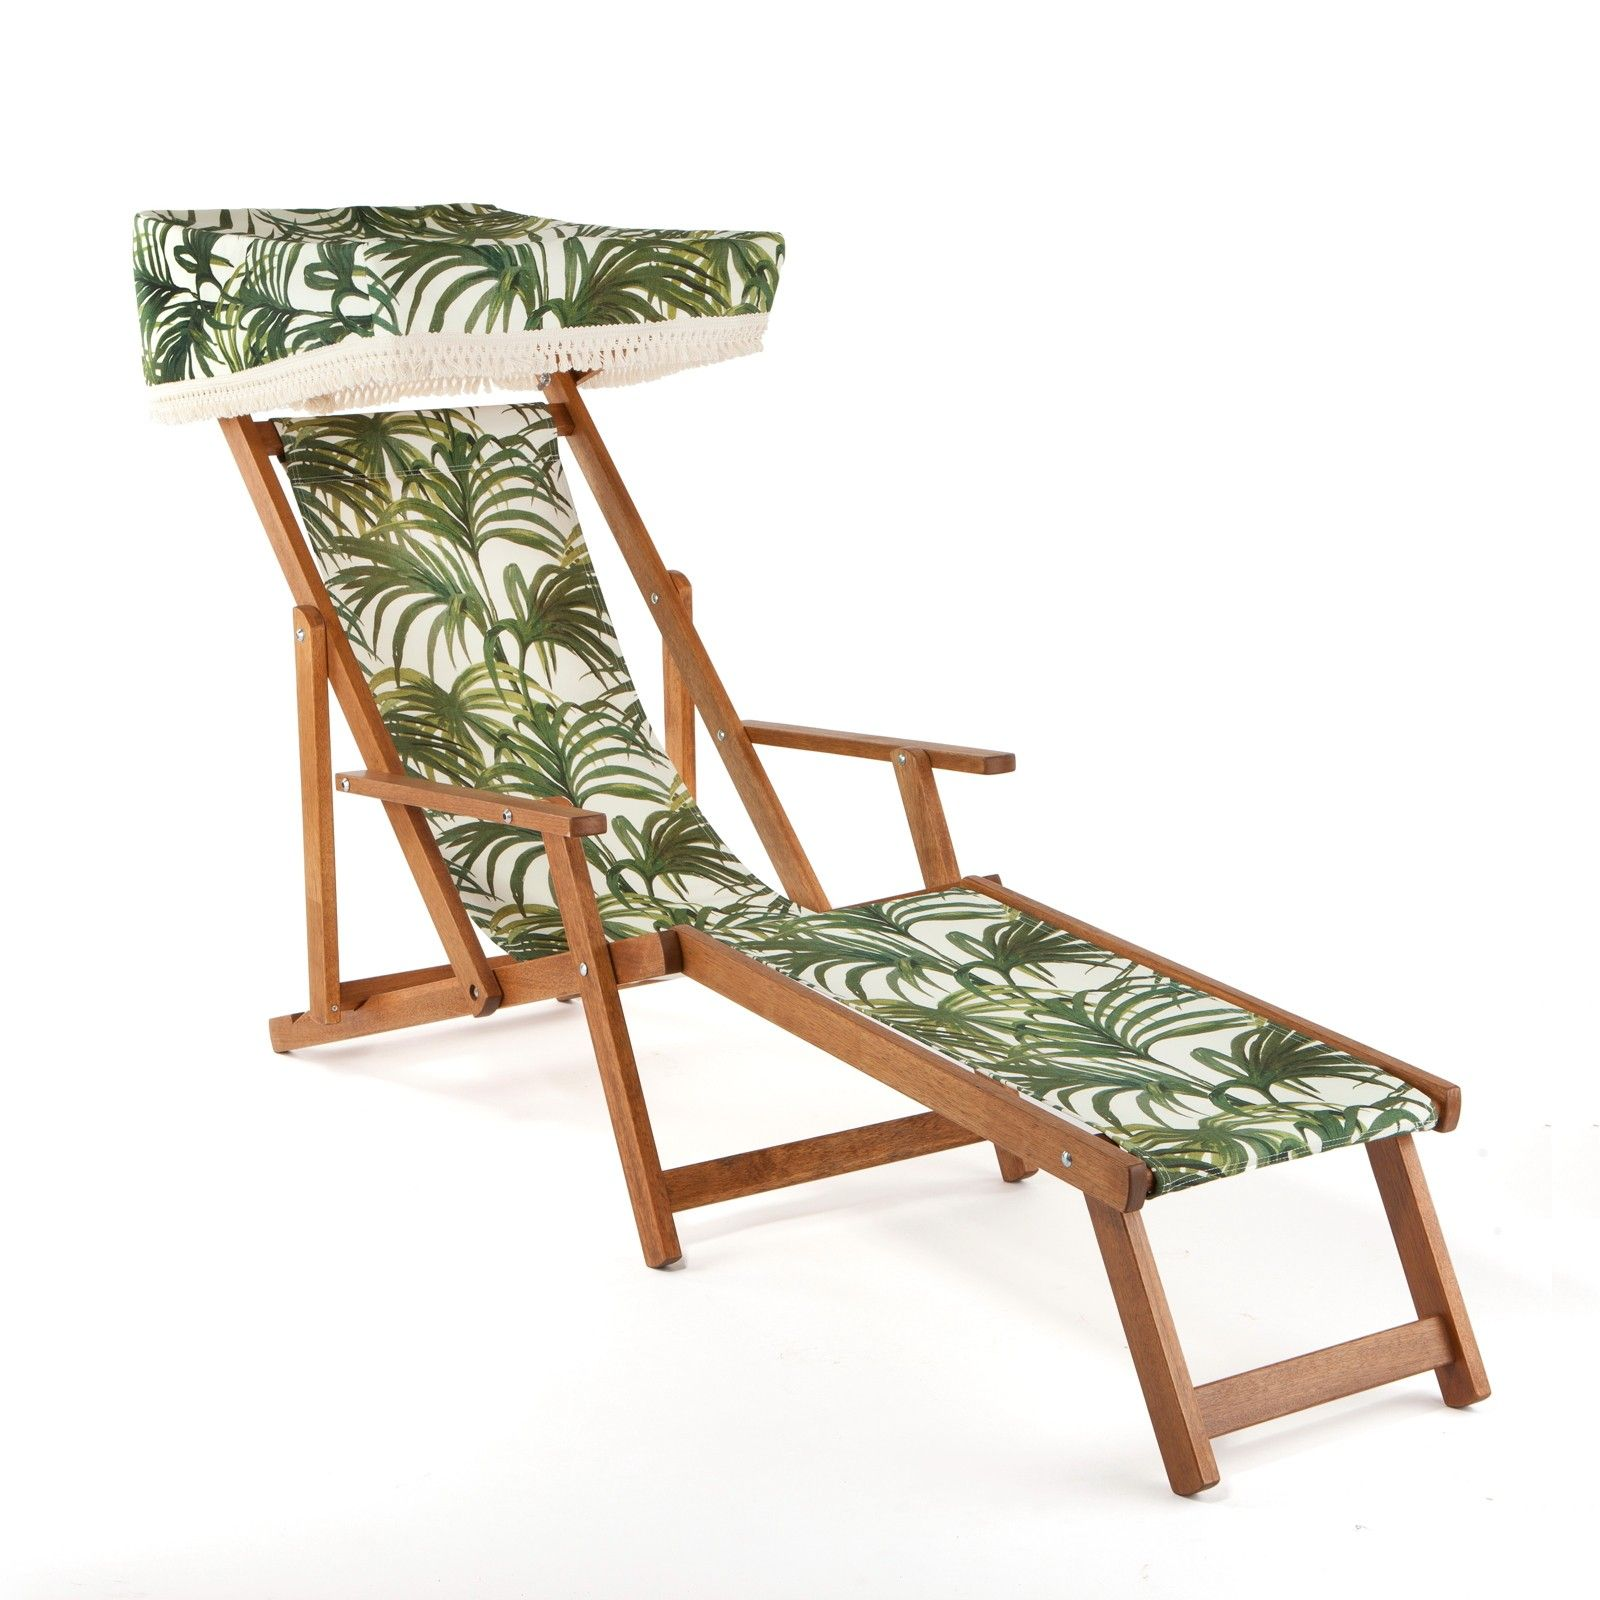 Palmeral Edwardian Deck Chair With Footstool  White Green